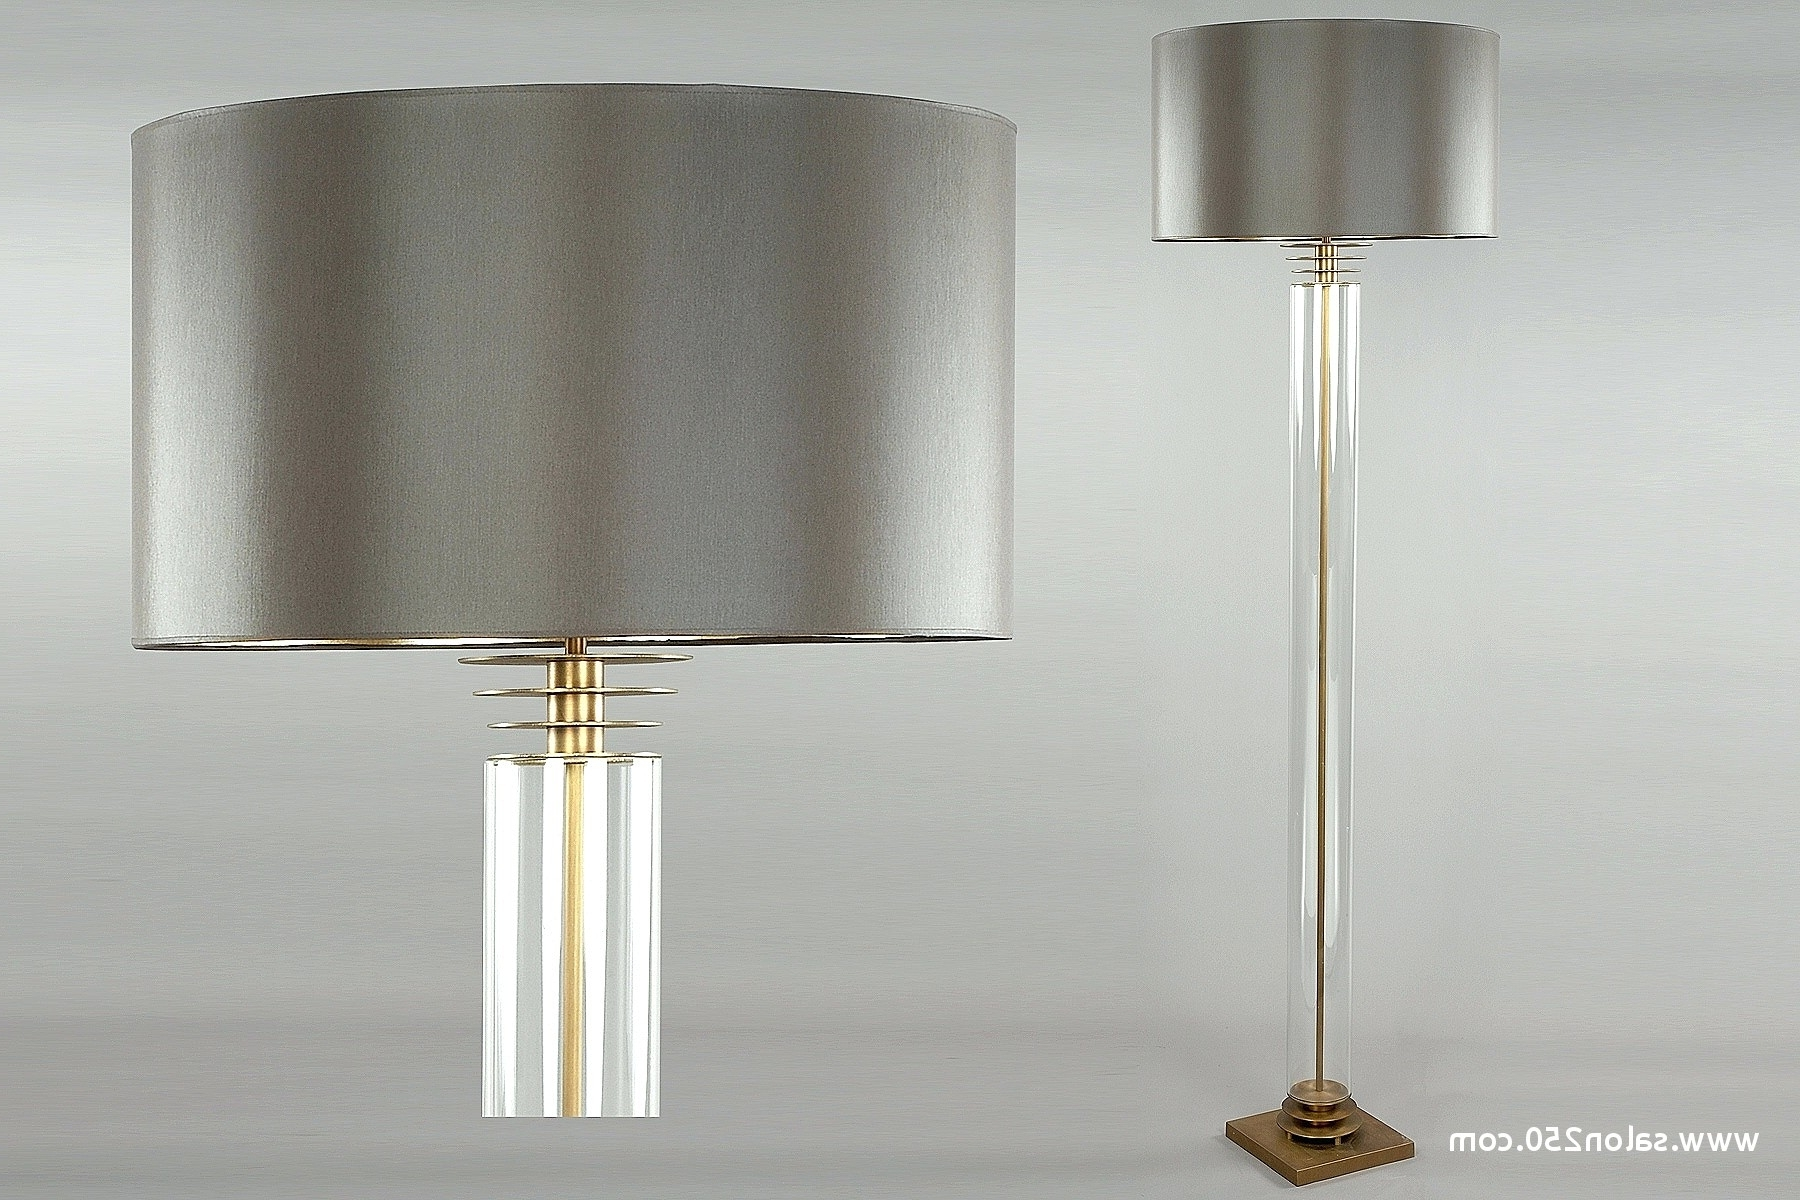 Living Room Table Reading Lamps Within Newest Light : Floor Lamp Shade Replacement Luxury Lamps Glass Reflector (View 8 of 20)